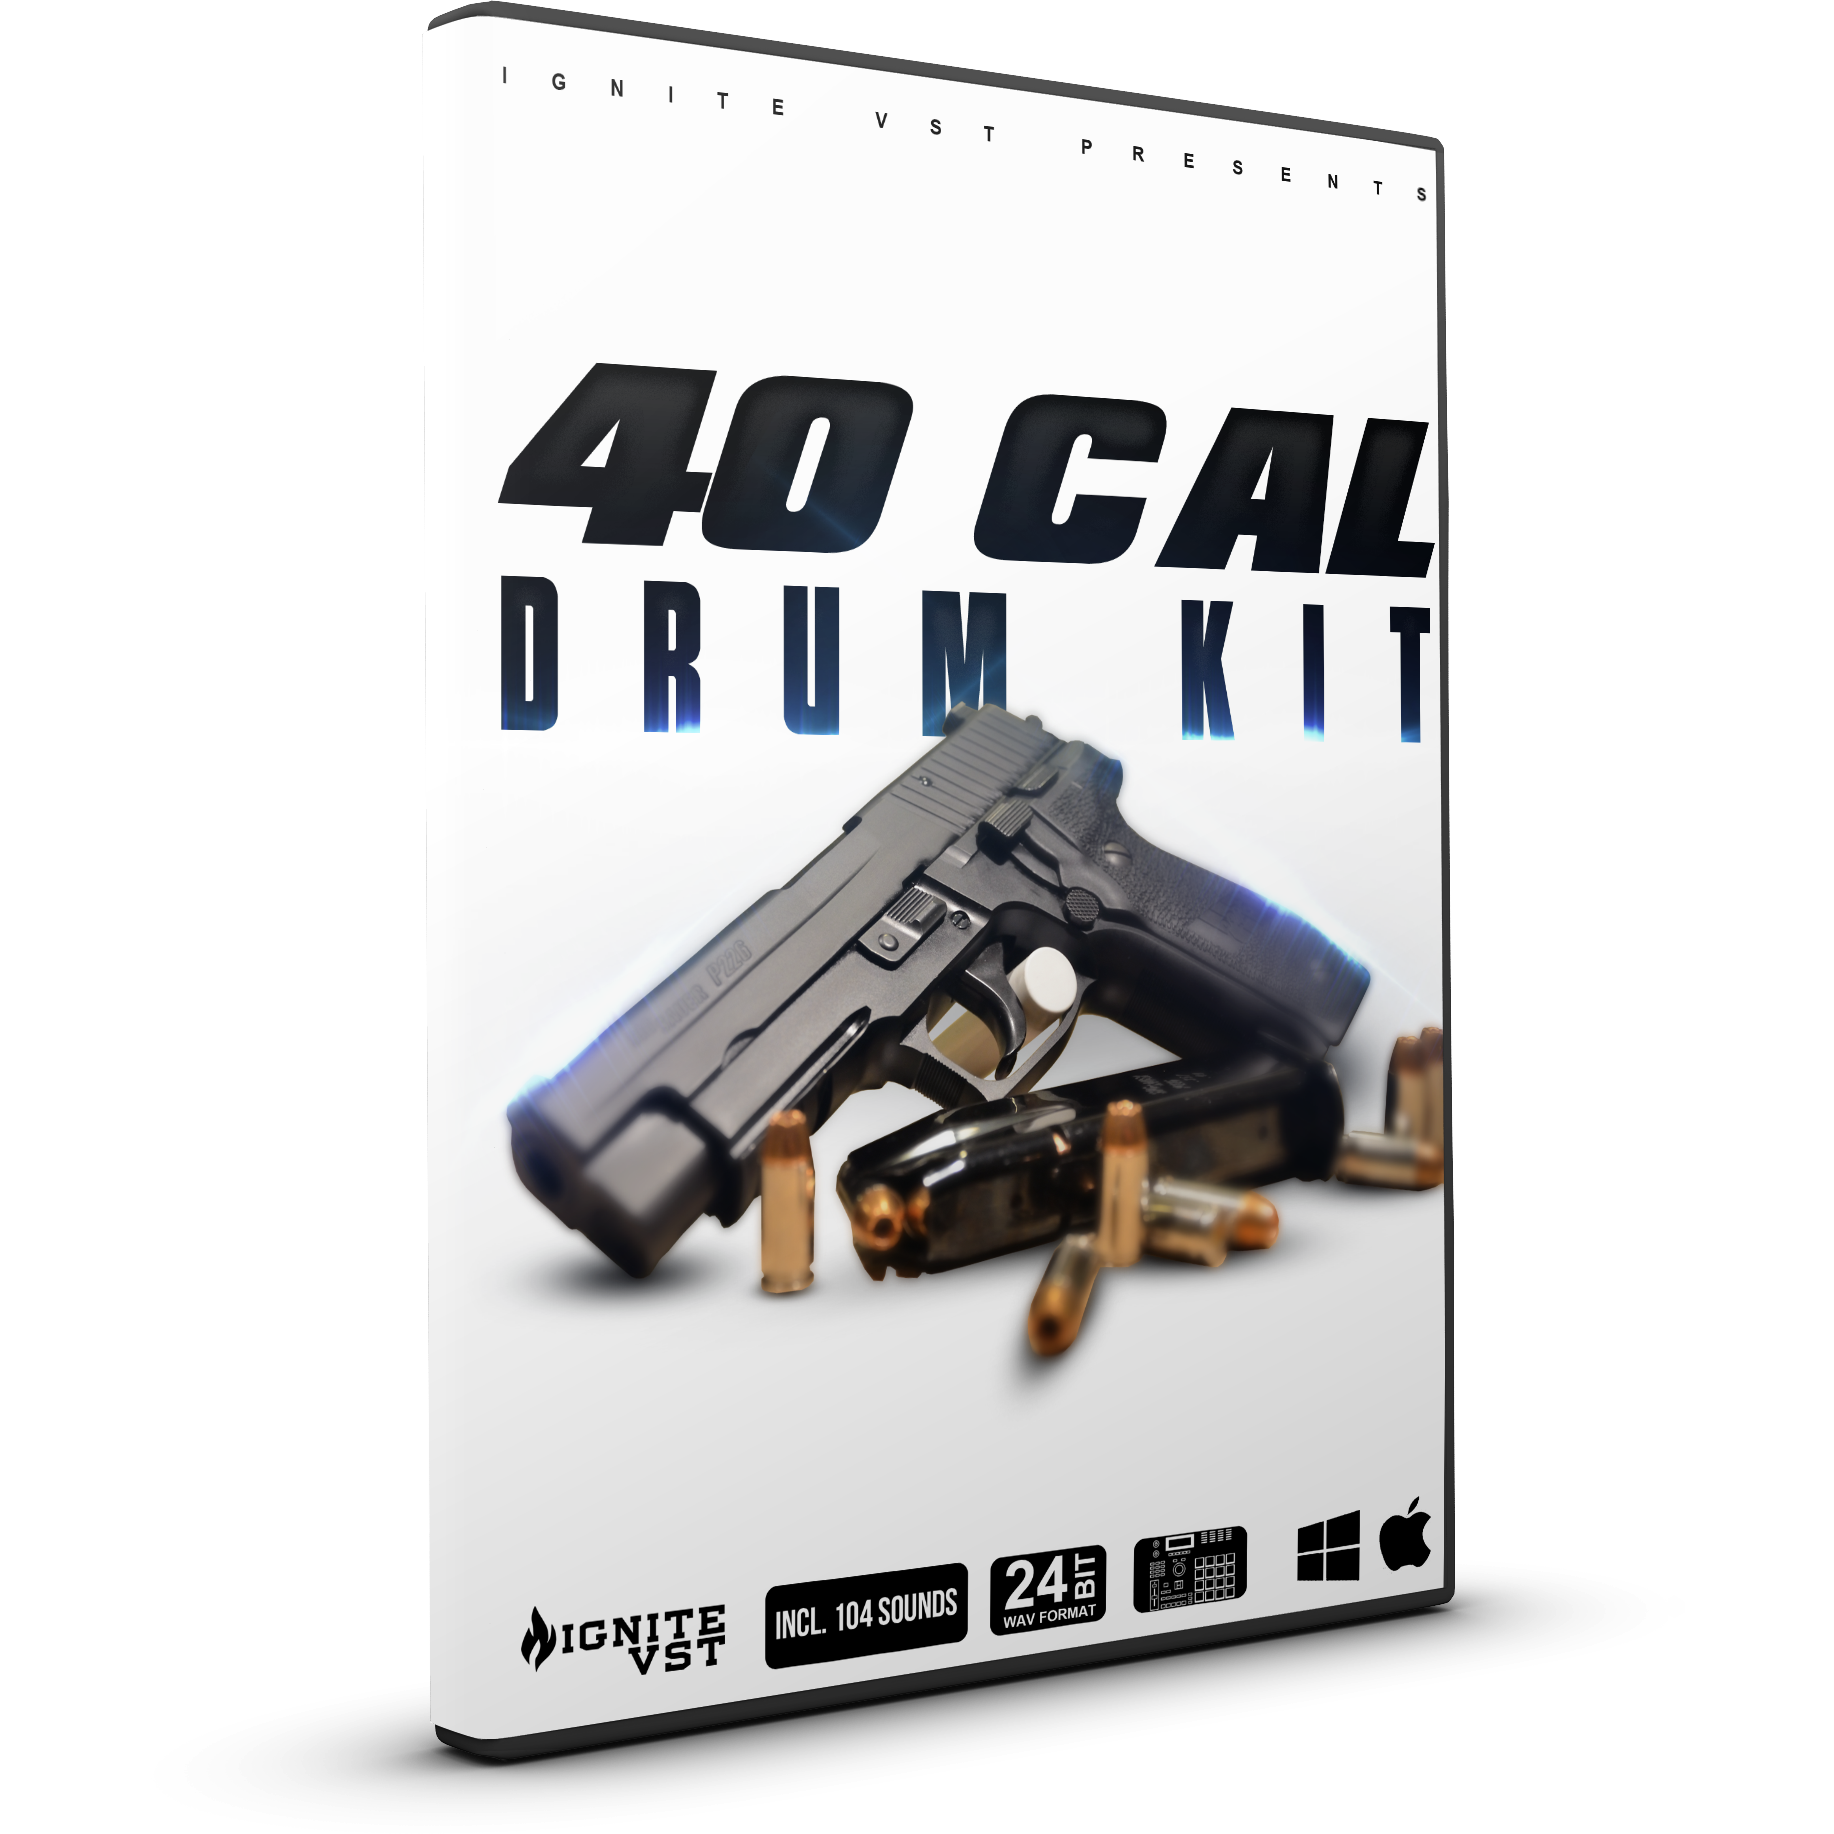 40 CAL - DRUM KIT